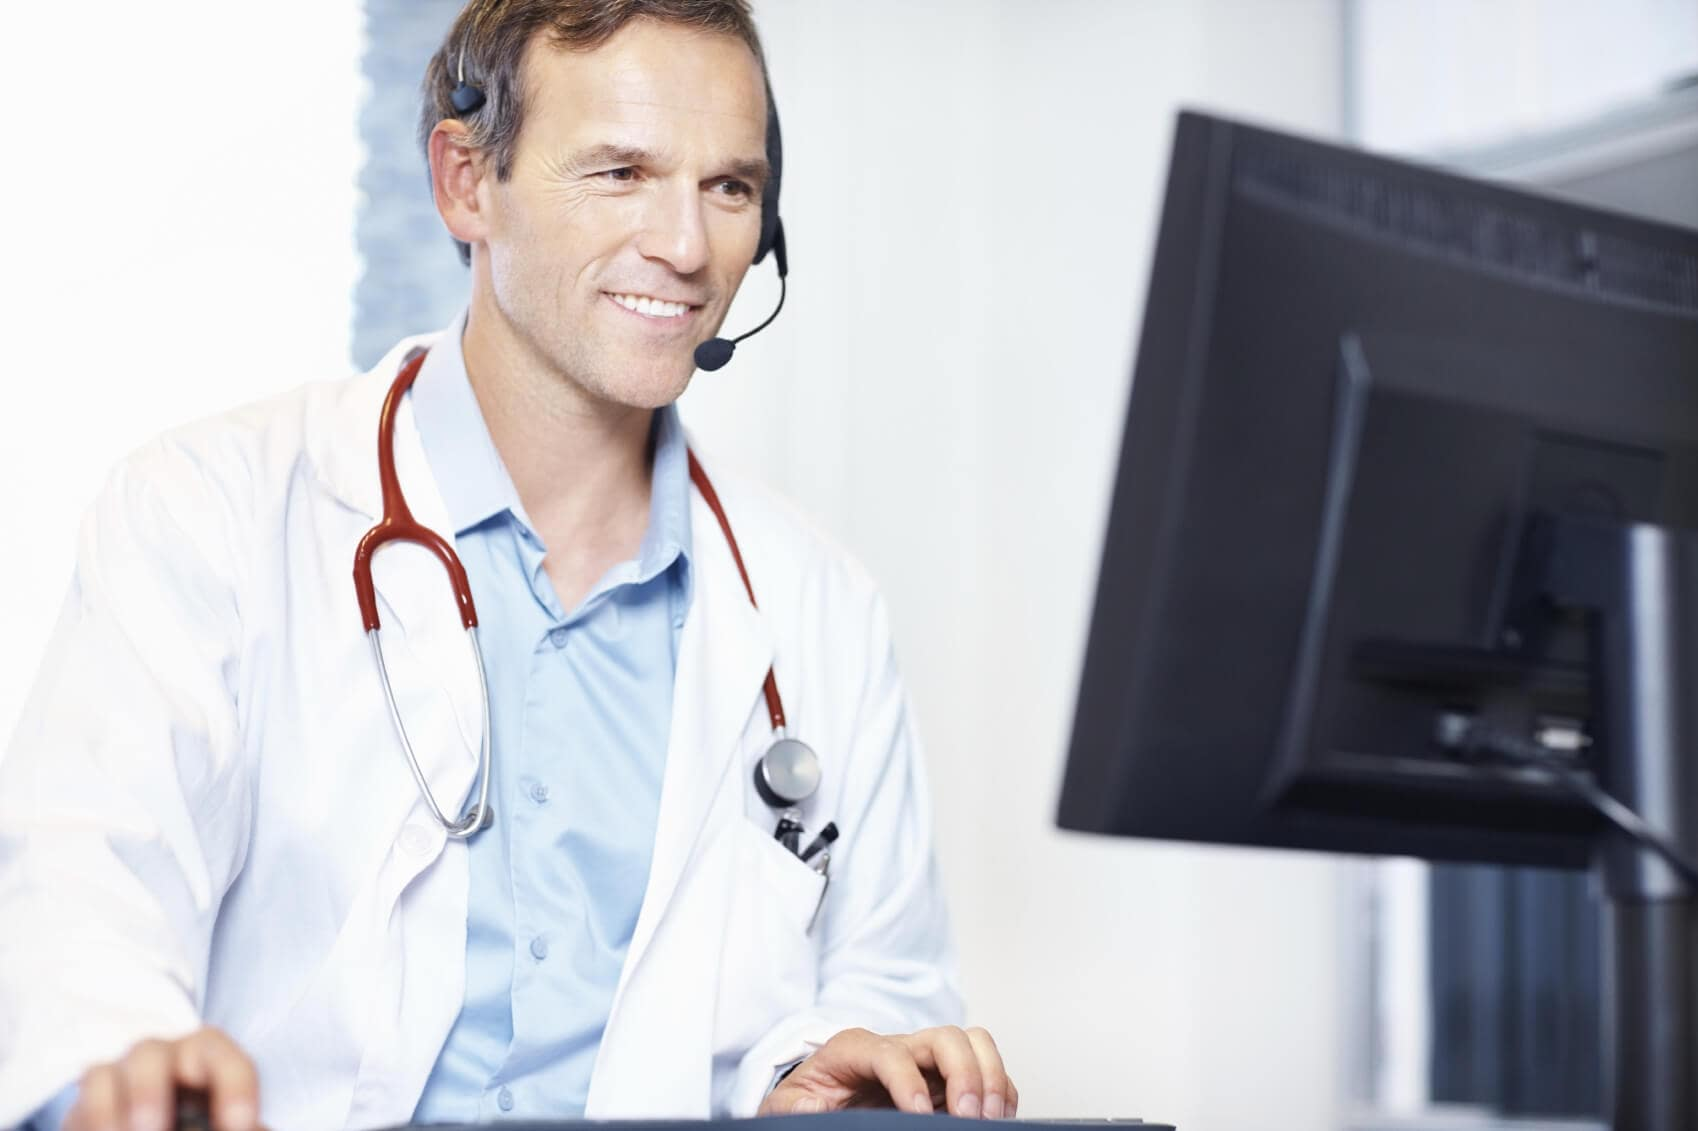 The future of online diagnosing